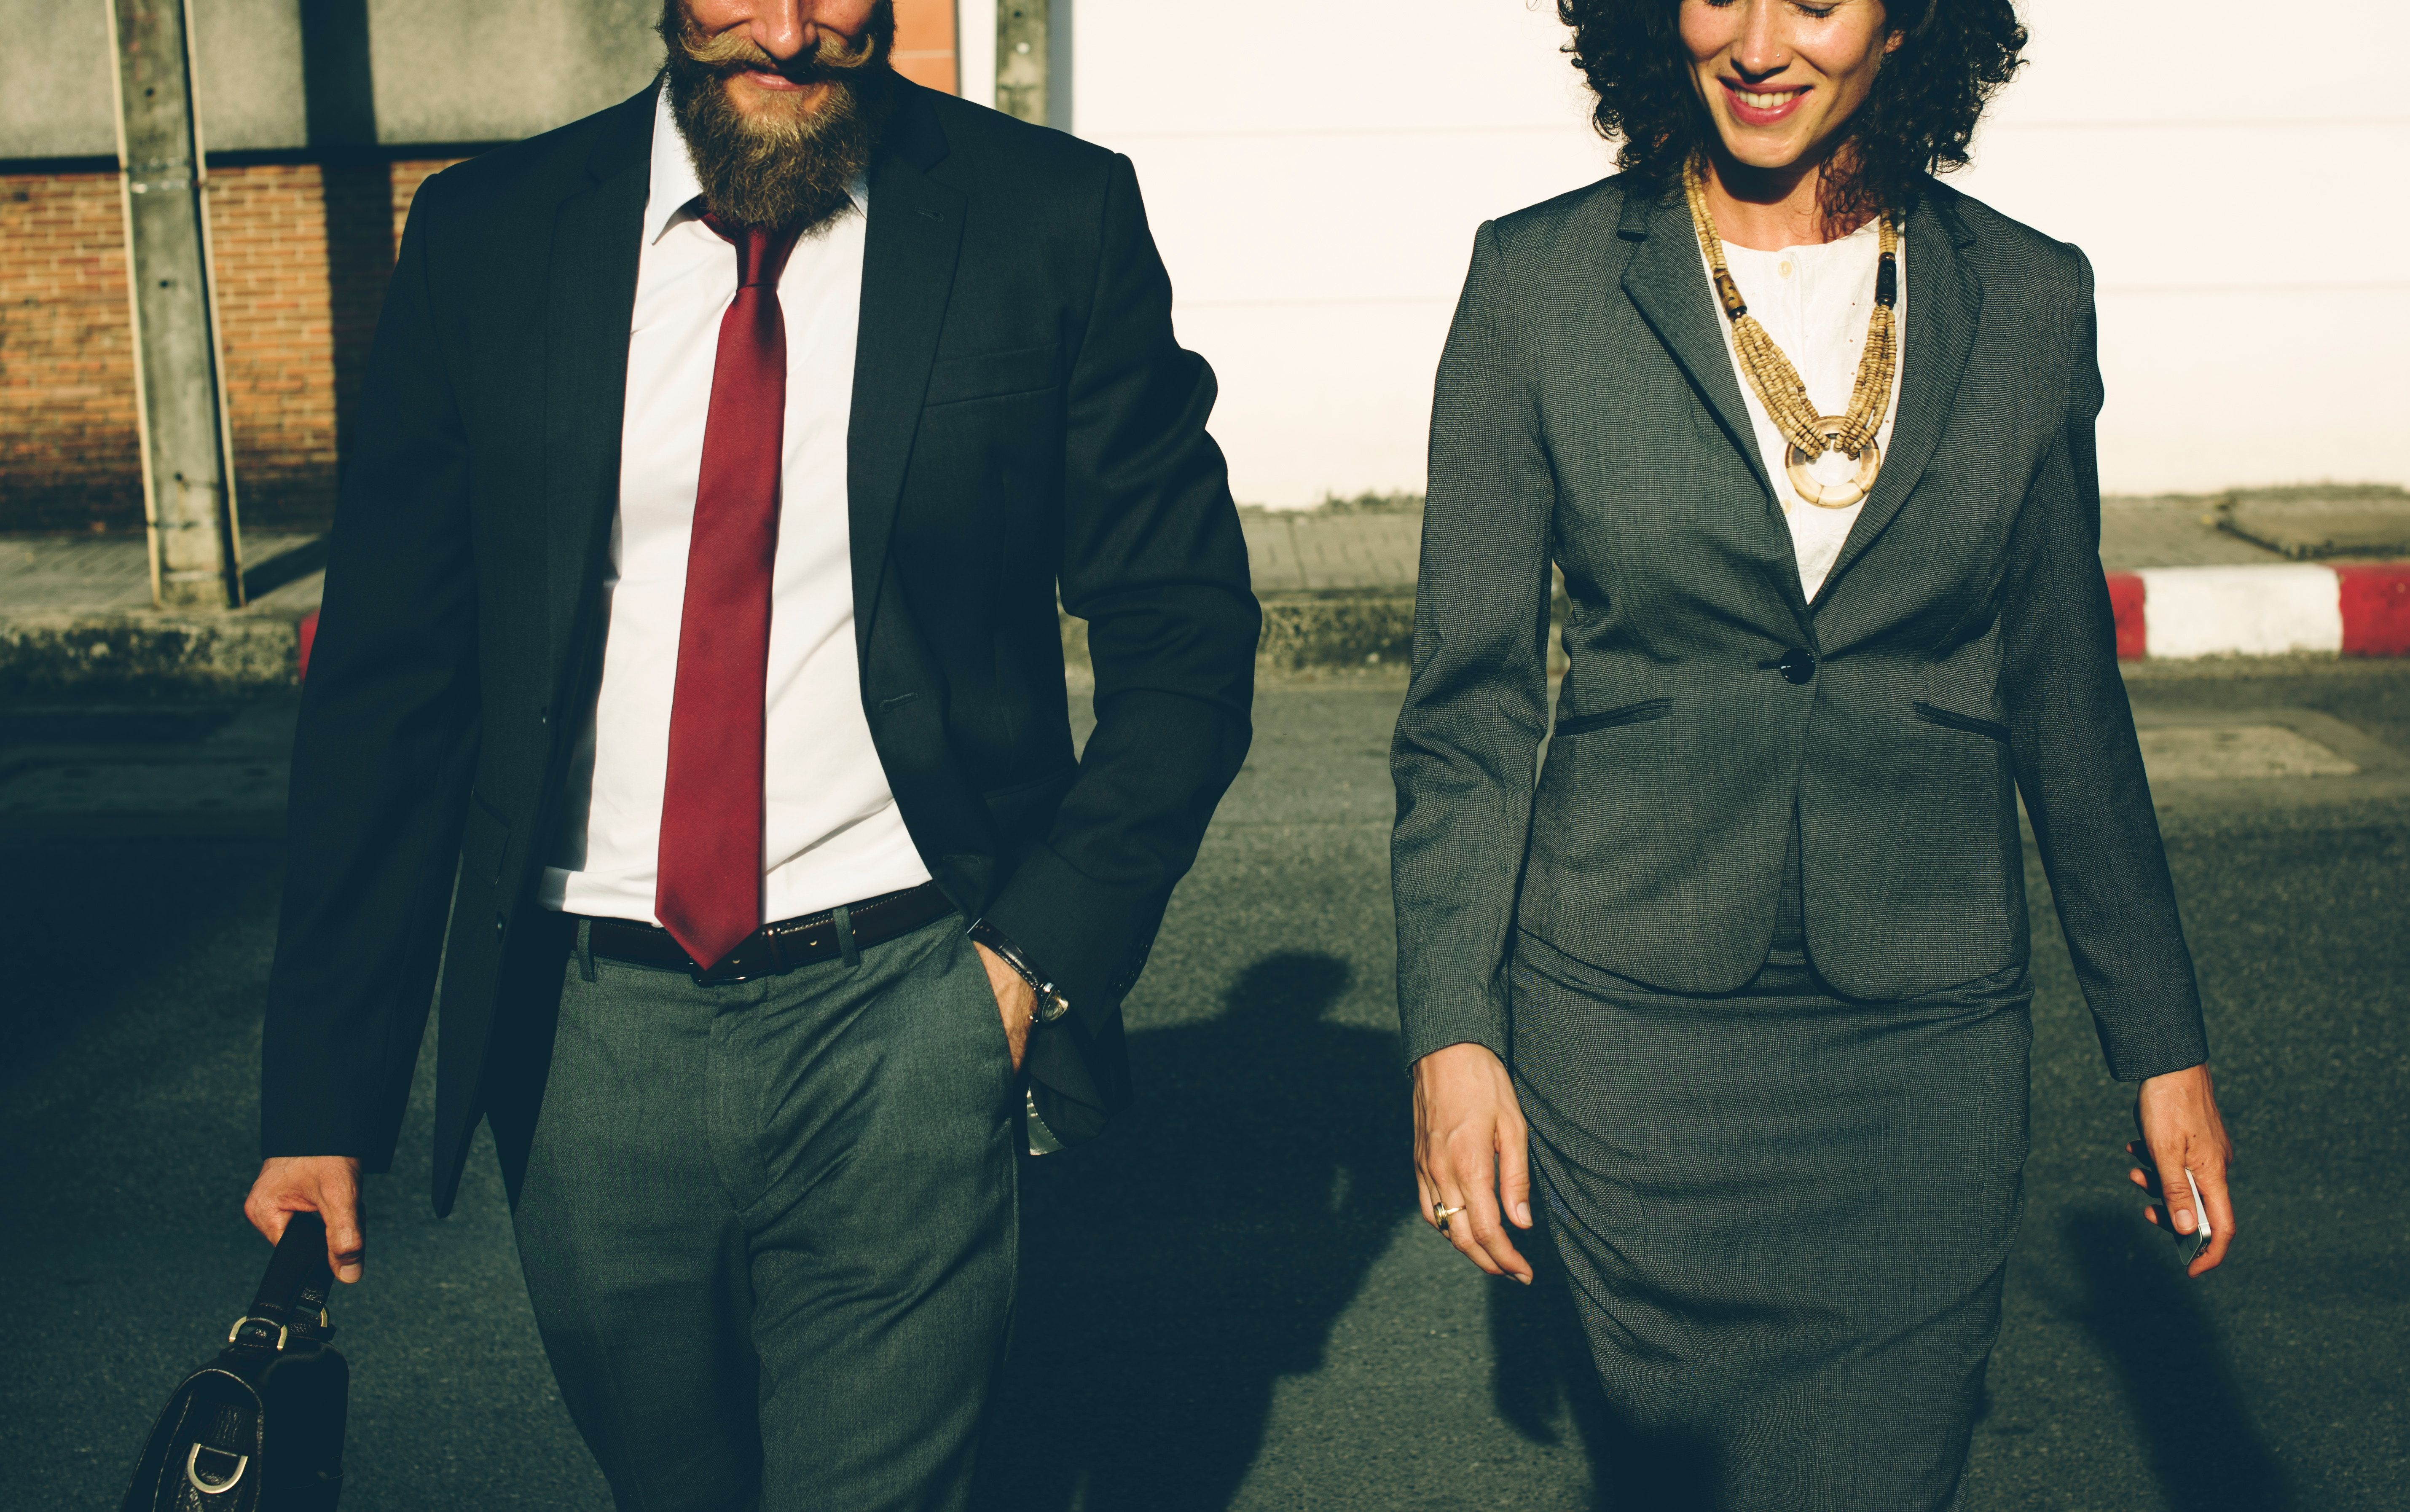 Interview Preparation Tips man and woman walking.